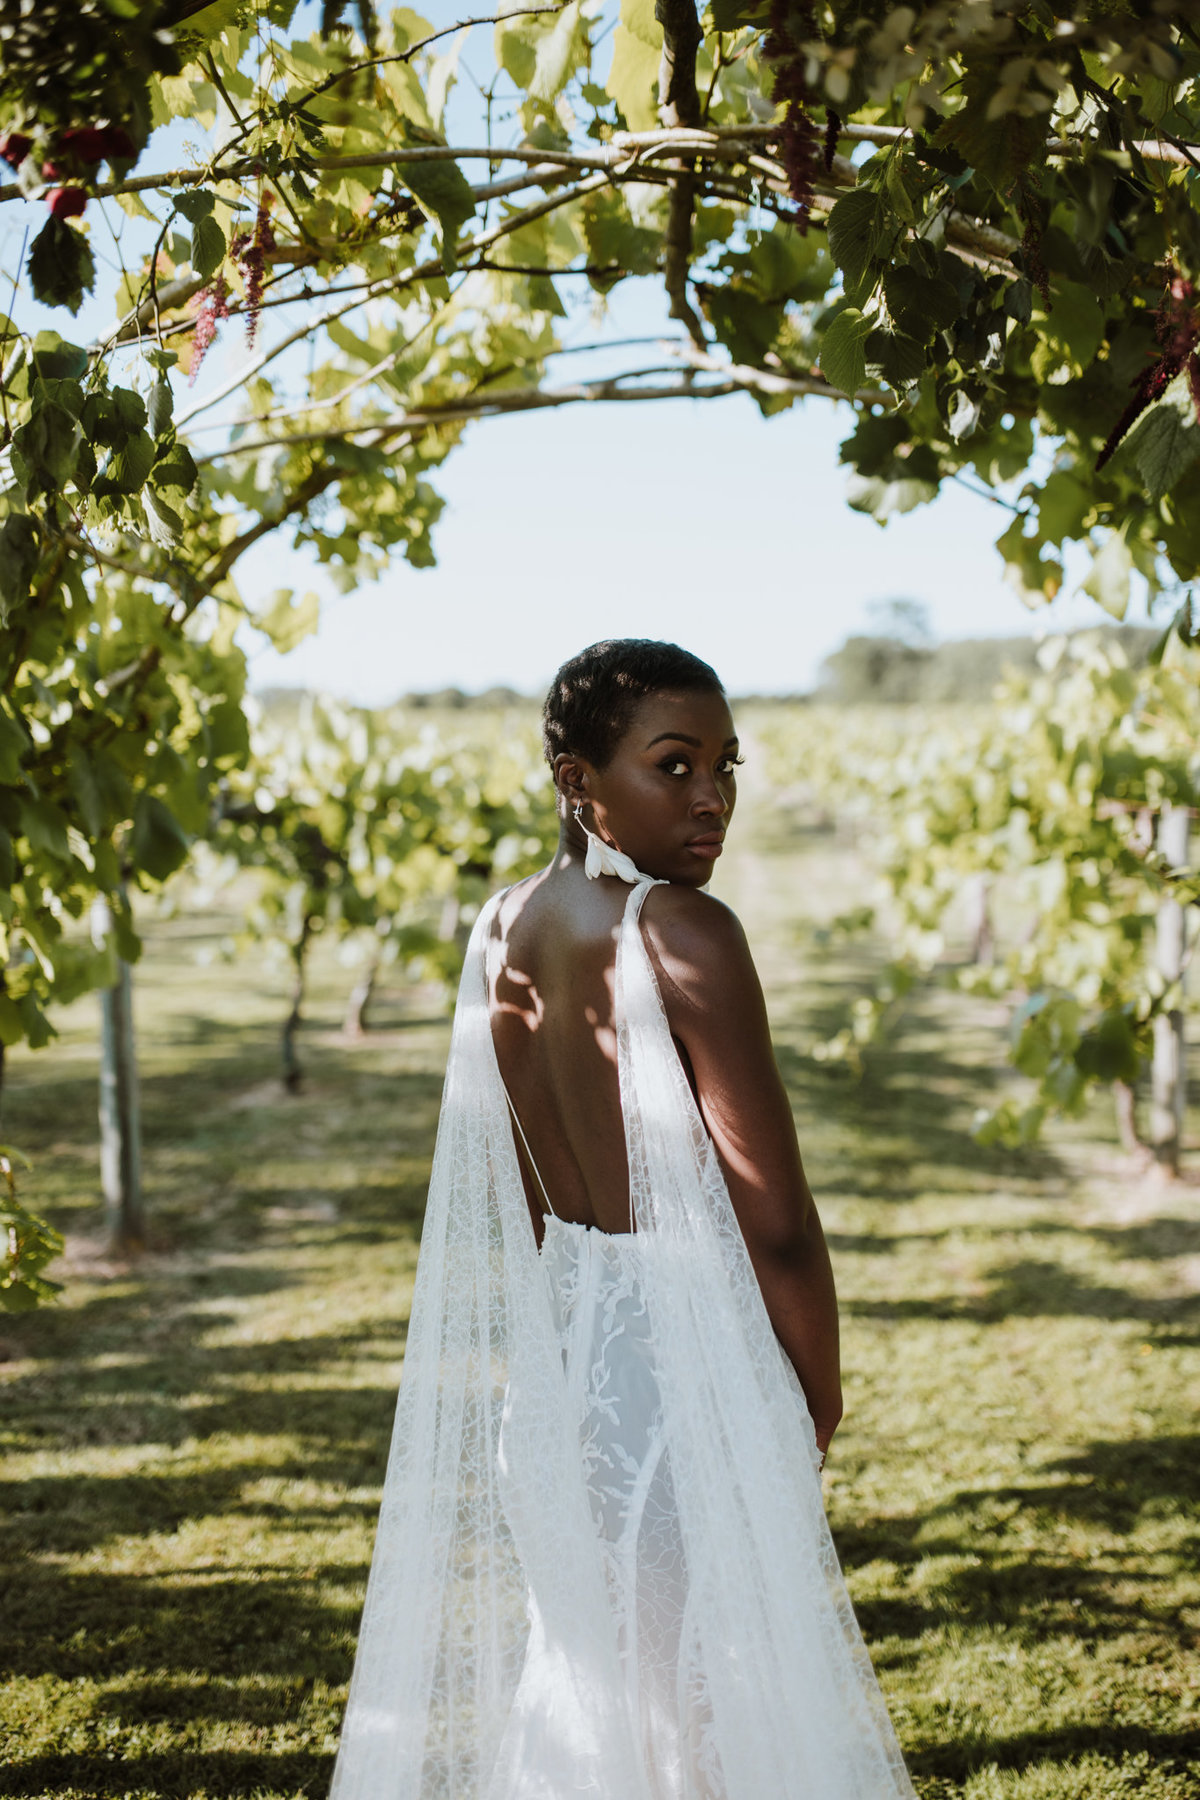 The Stars Inside - Vineyard Destination Wedding - Laura Martha Photography (124)